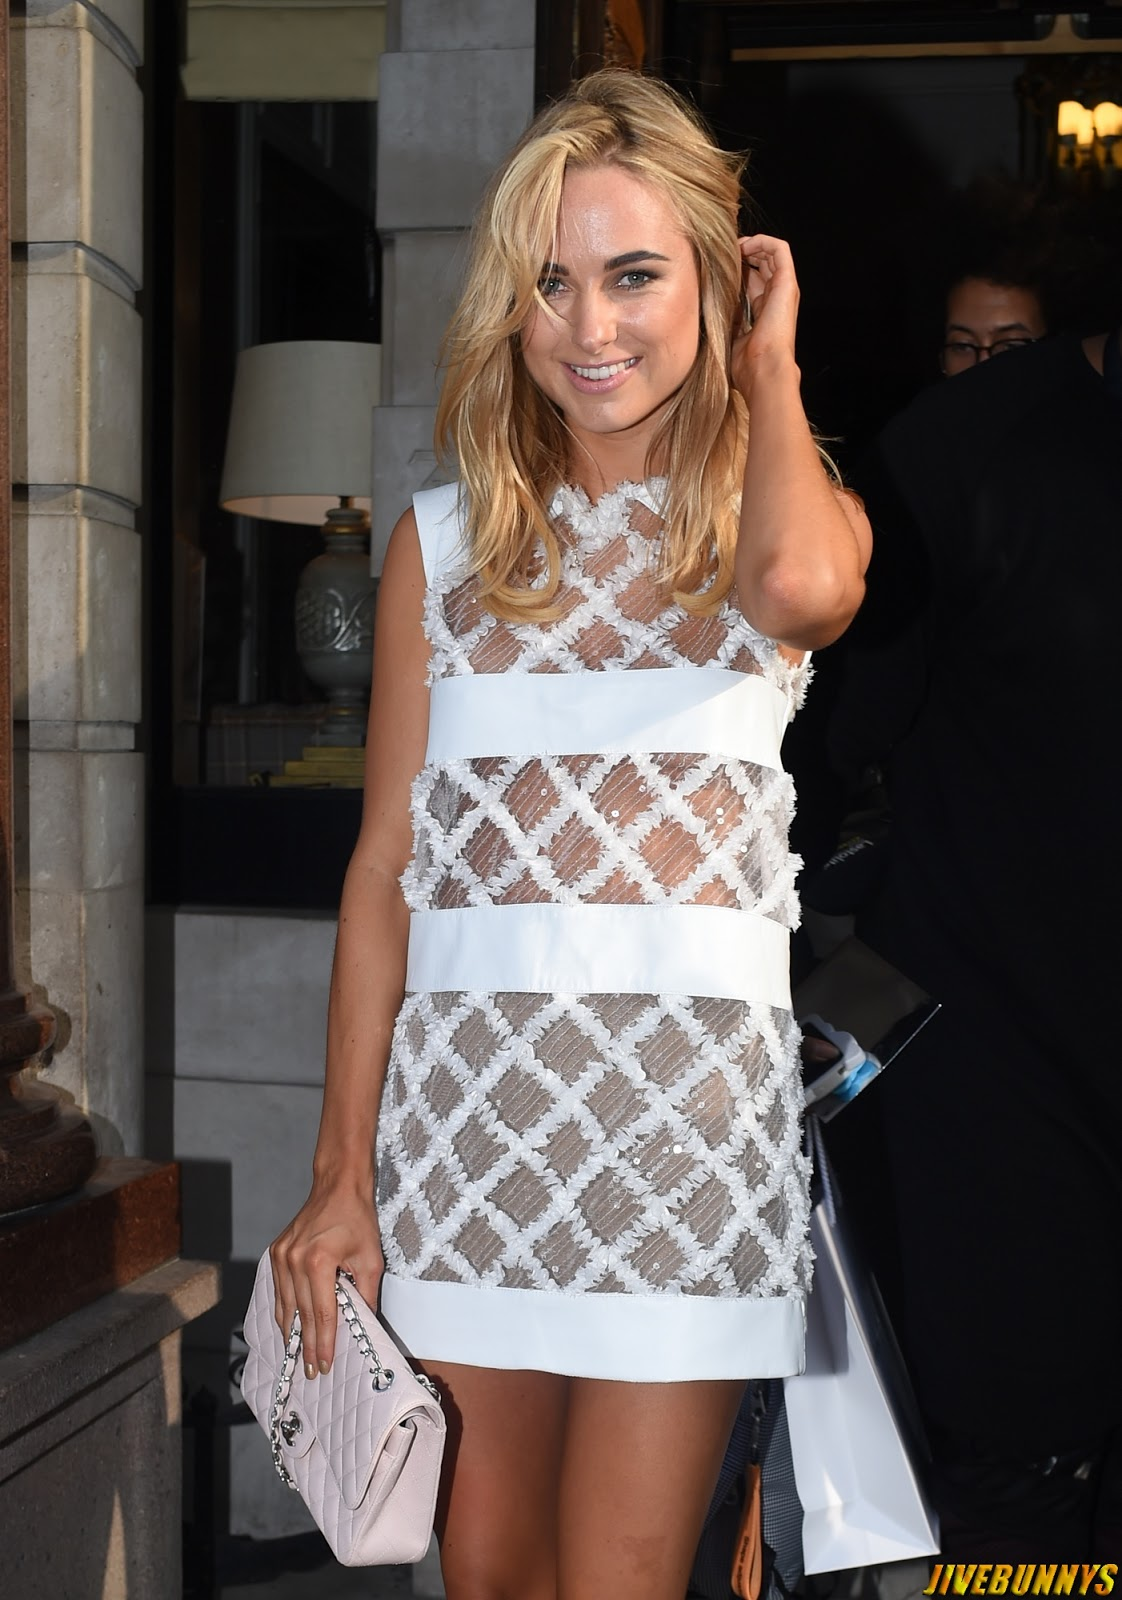 Kimberley Garner @ Busardi Fashion show for London Fashion Week - 12/09/2014